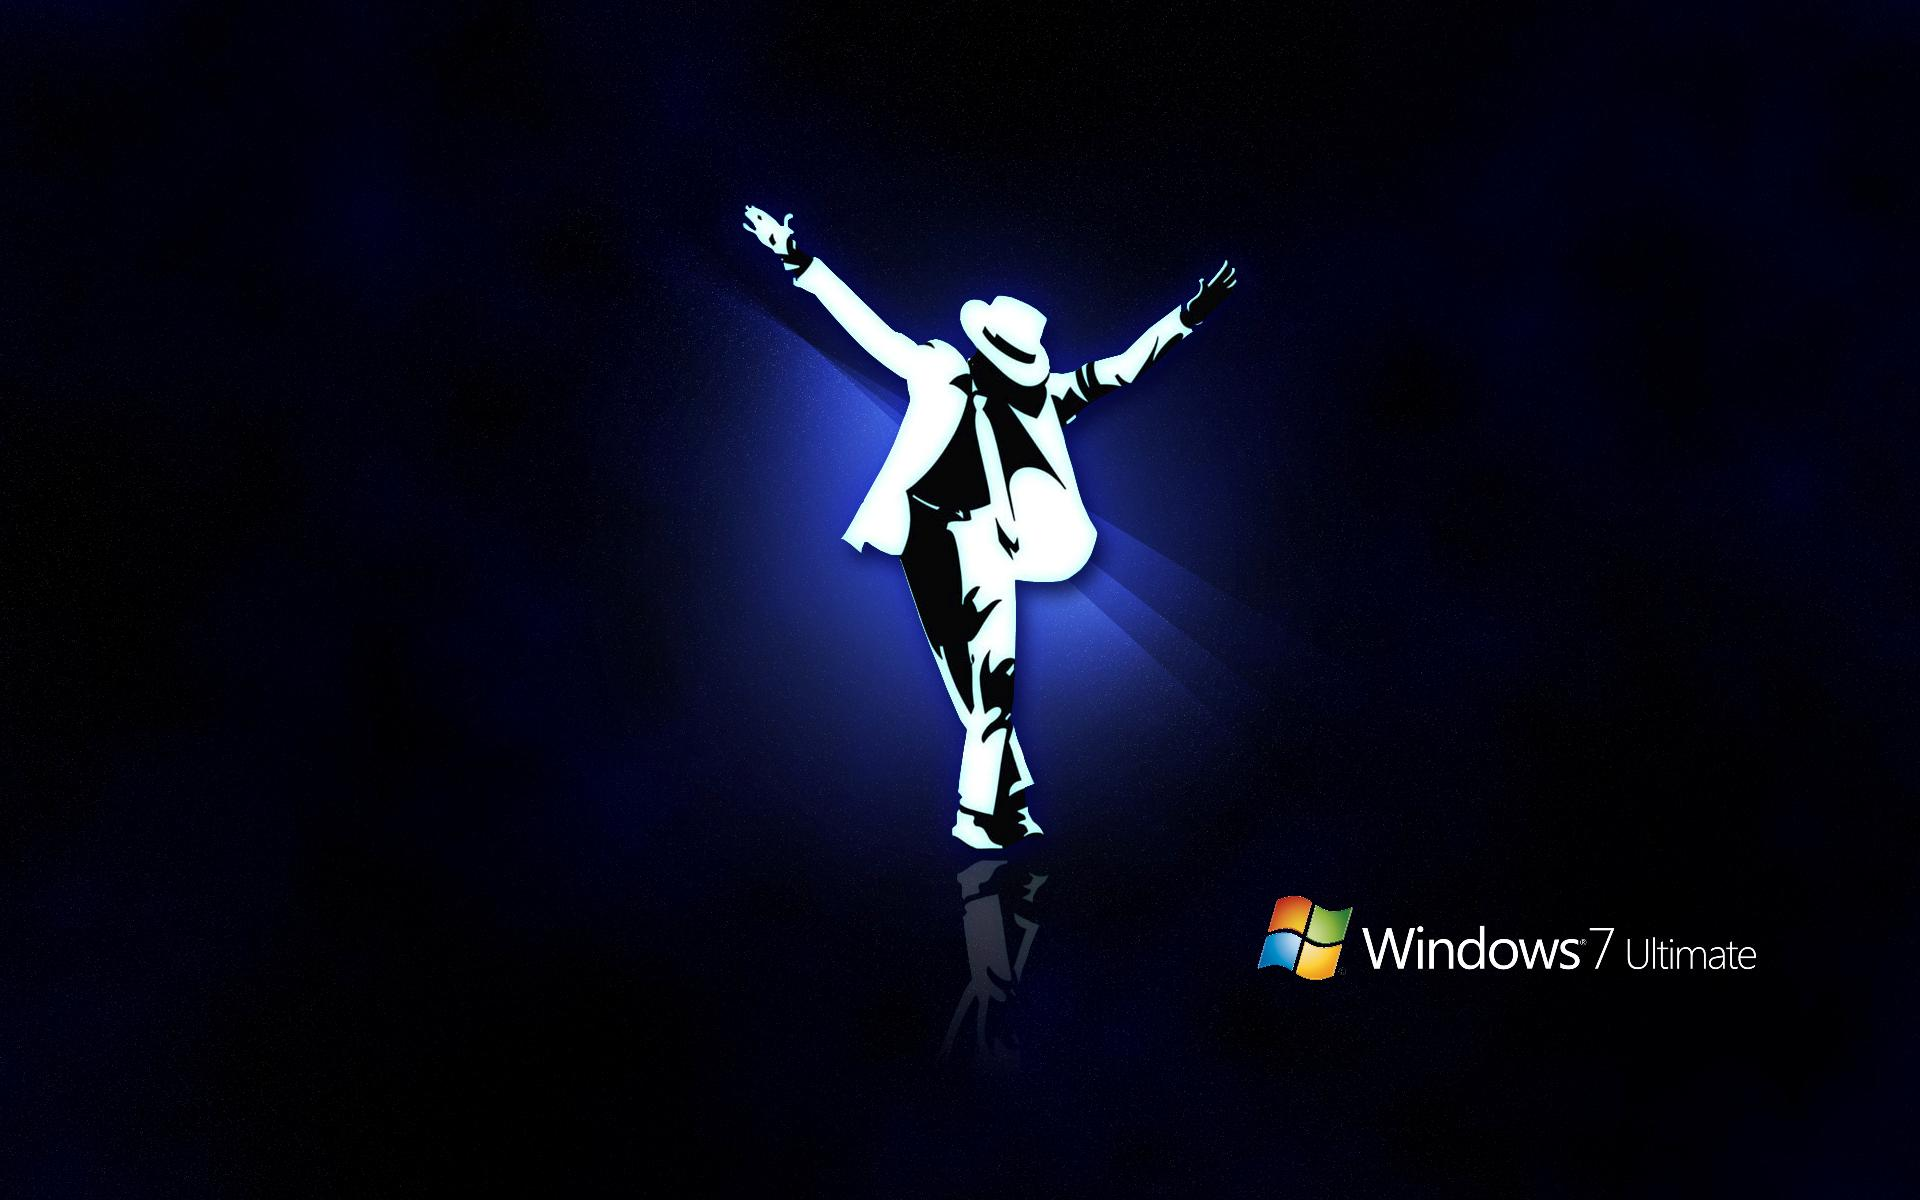 Michael Jackson Moonwalk Wallpaper Festival Wallpaper 1920x1200